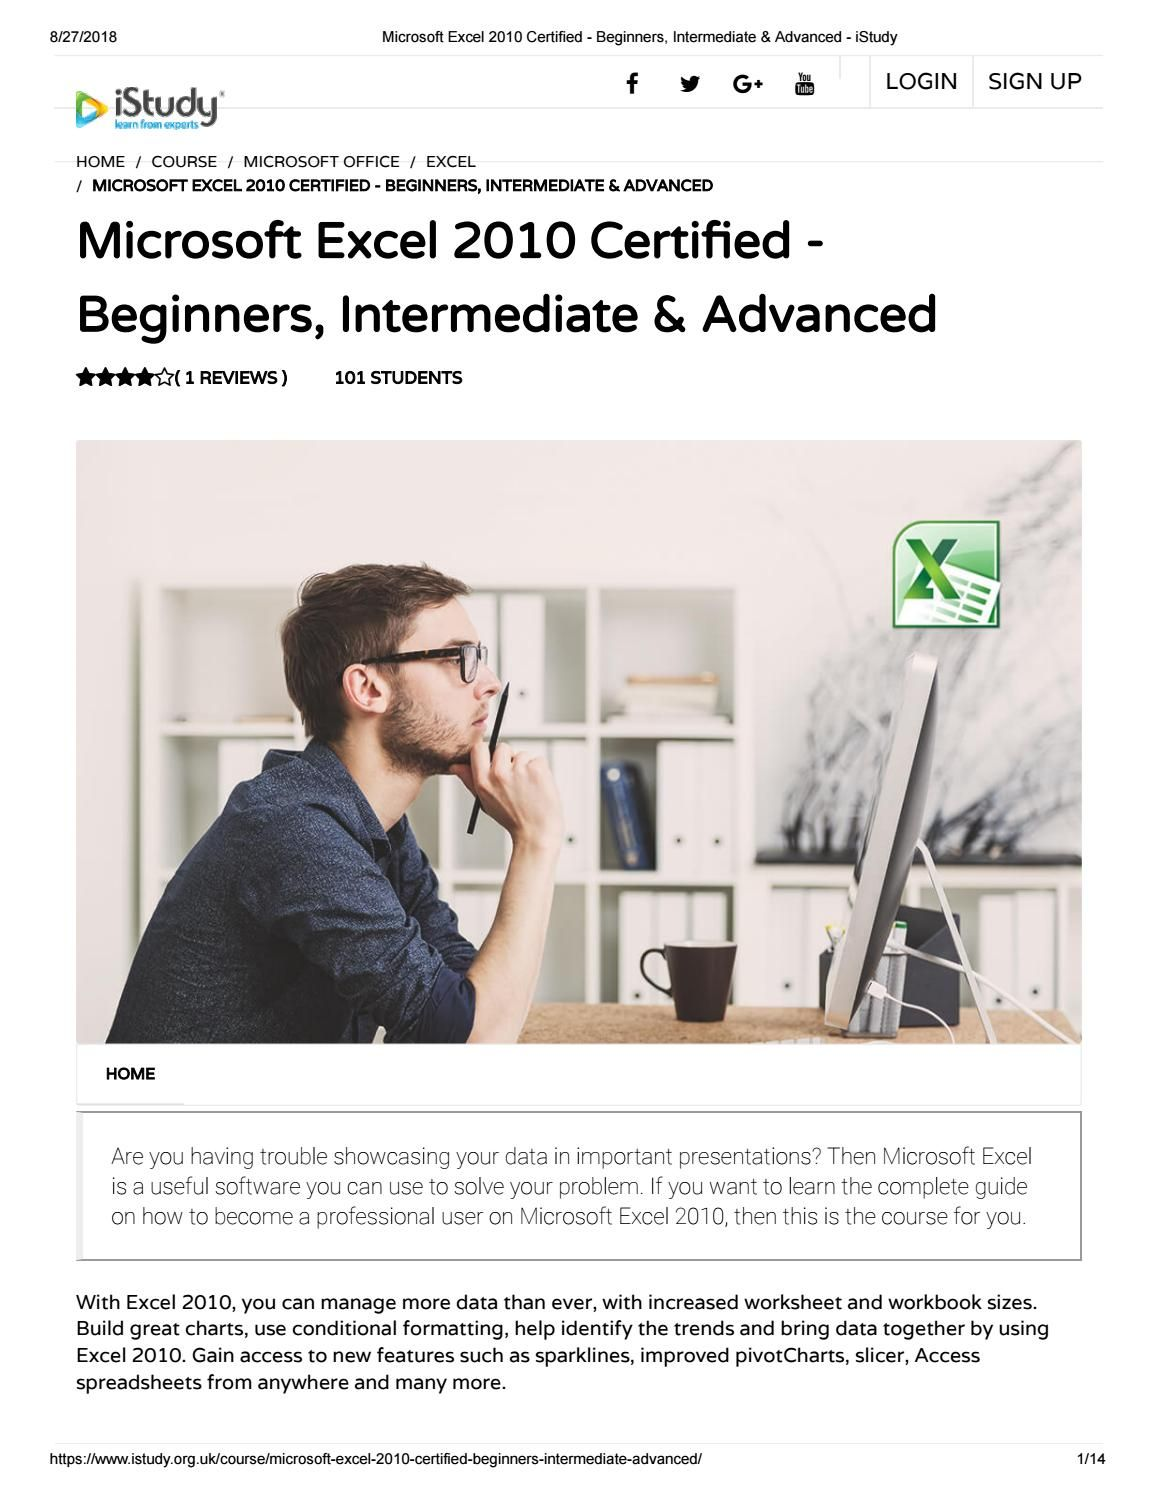 Microsoft Excel Certified